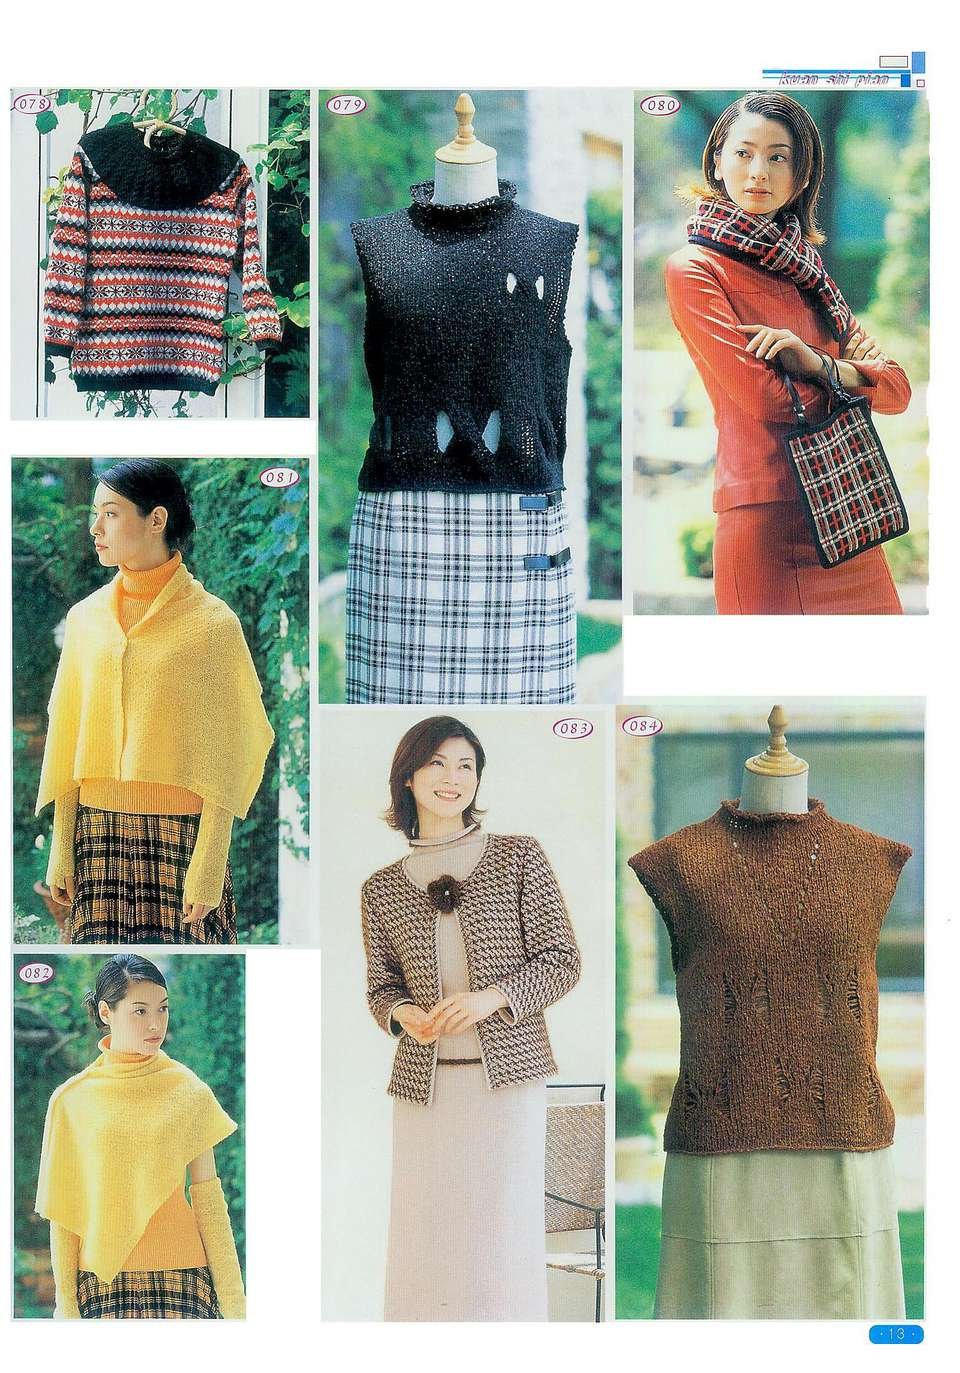 The-Machine-Knitting-Magazine-2-ng